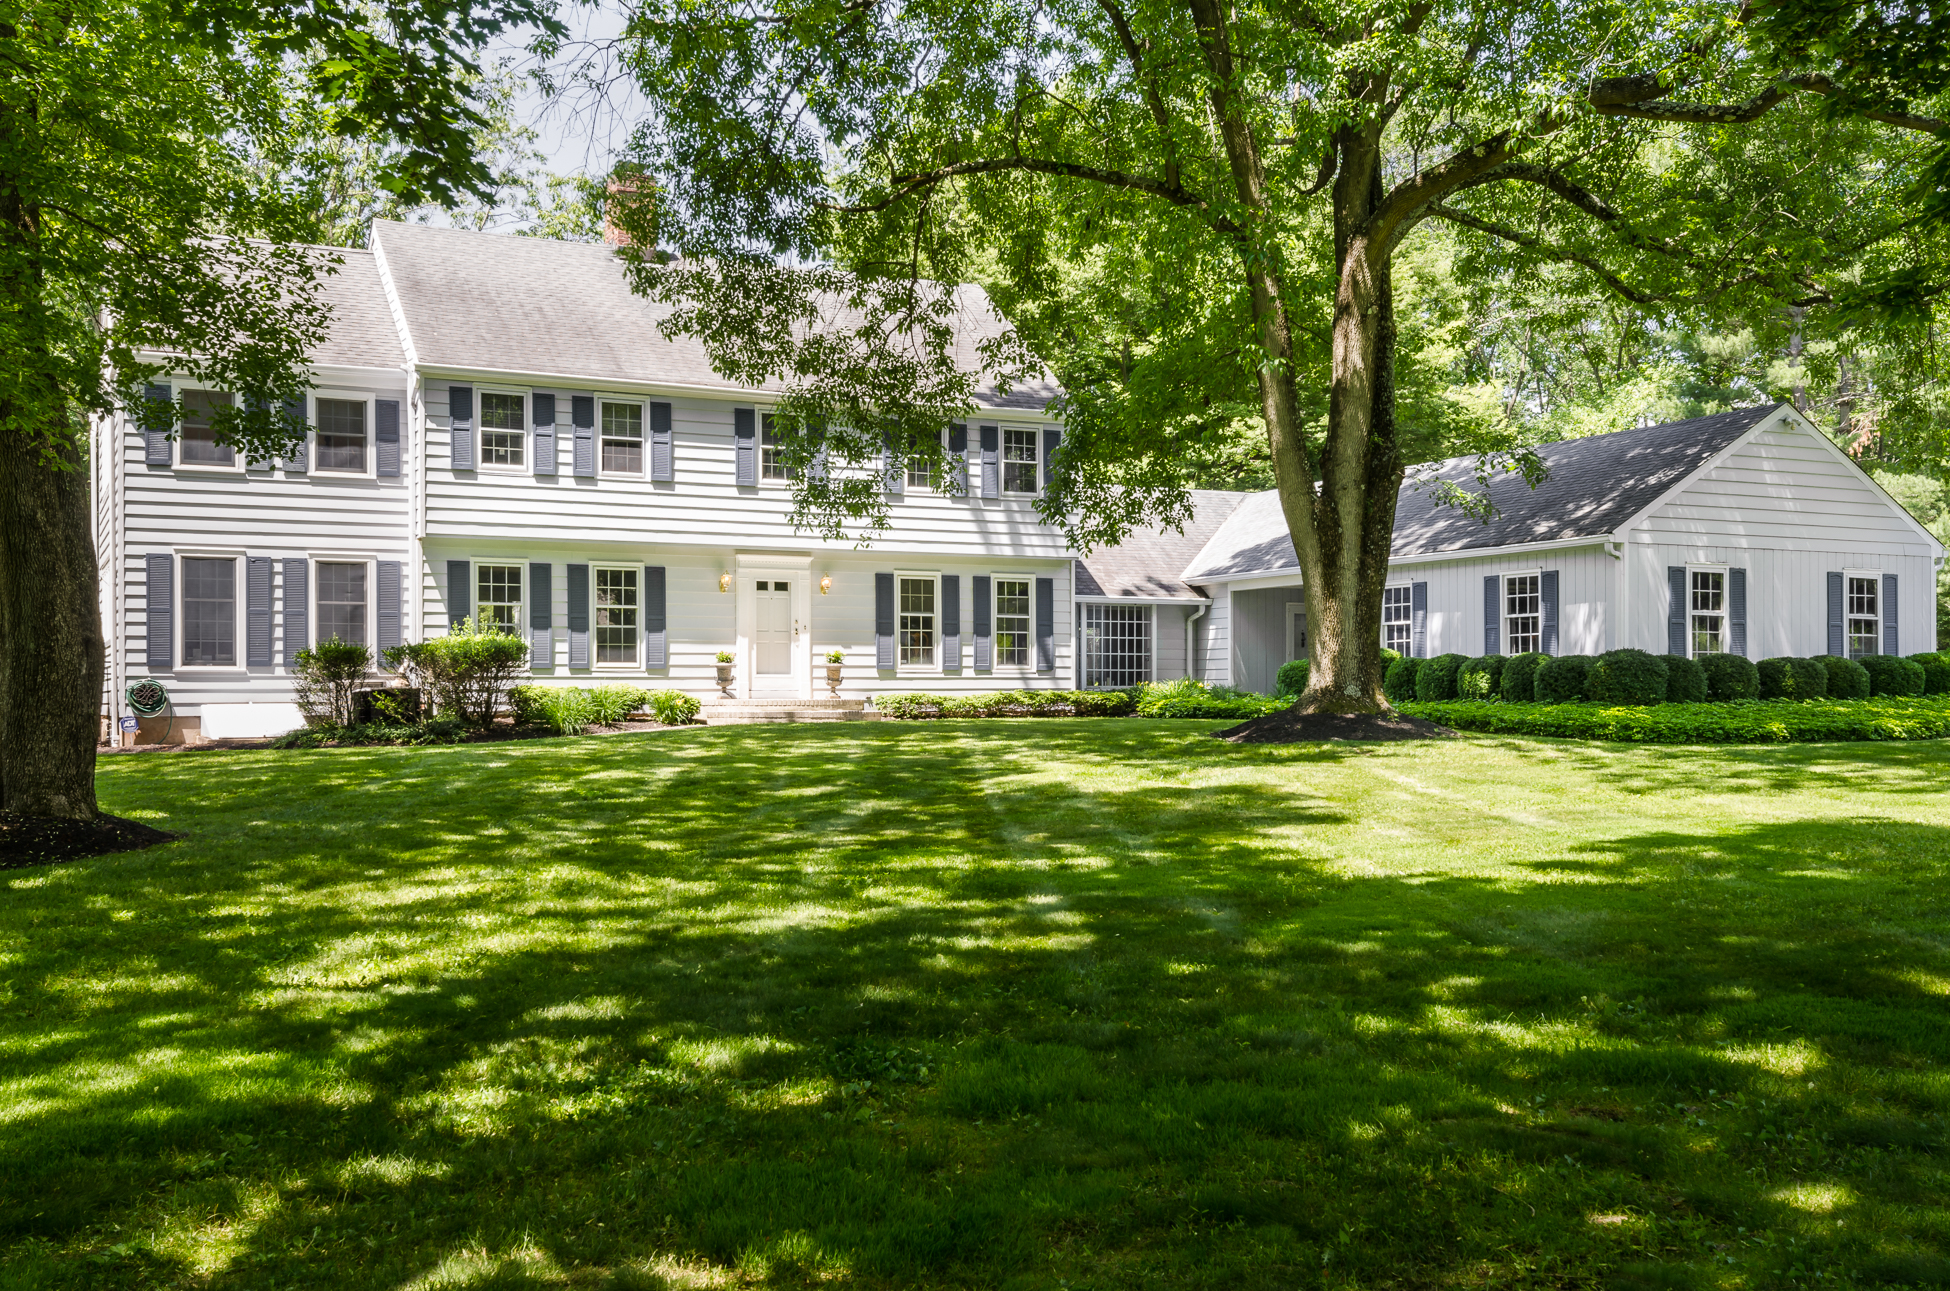 Casa Unifamiliar por un Venta en Dappled Setting in an Exclusive Princeton Enclave 50 Gallup Road Princeton, Nueva Jersey 08540 Estados Unidos